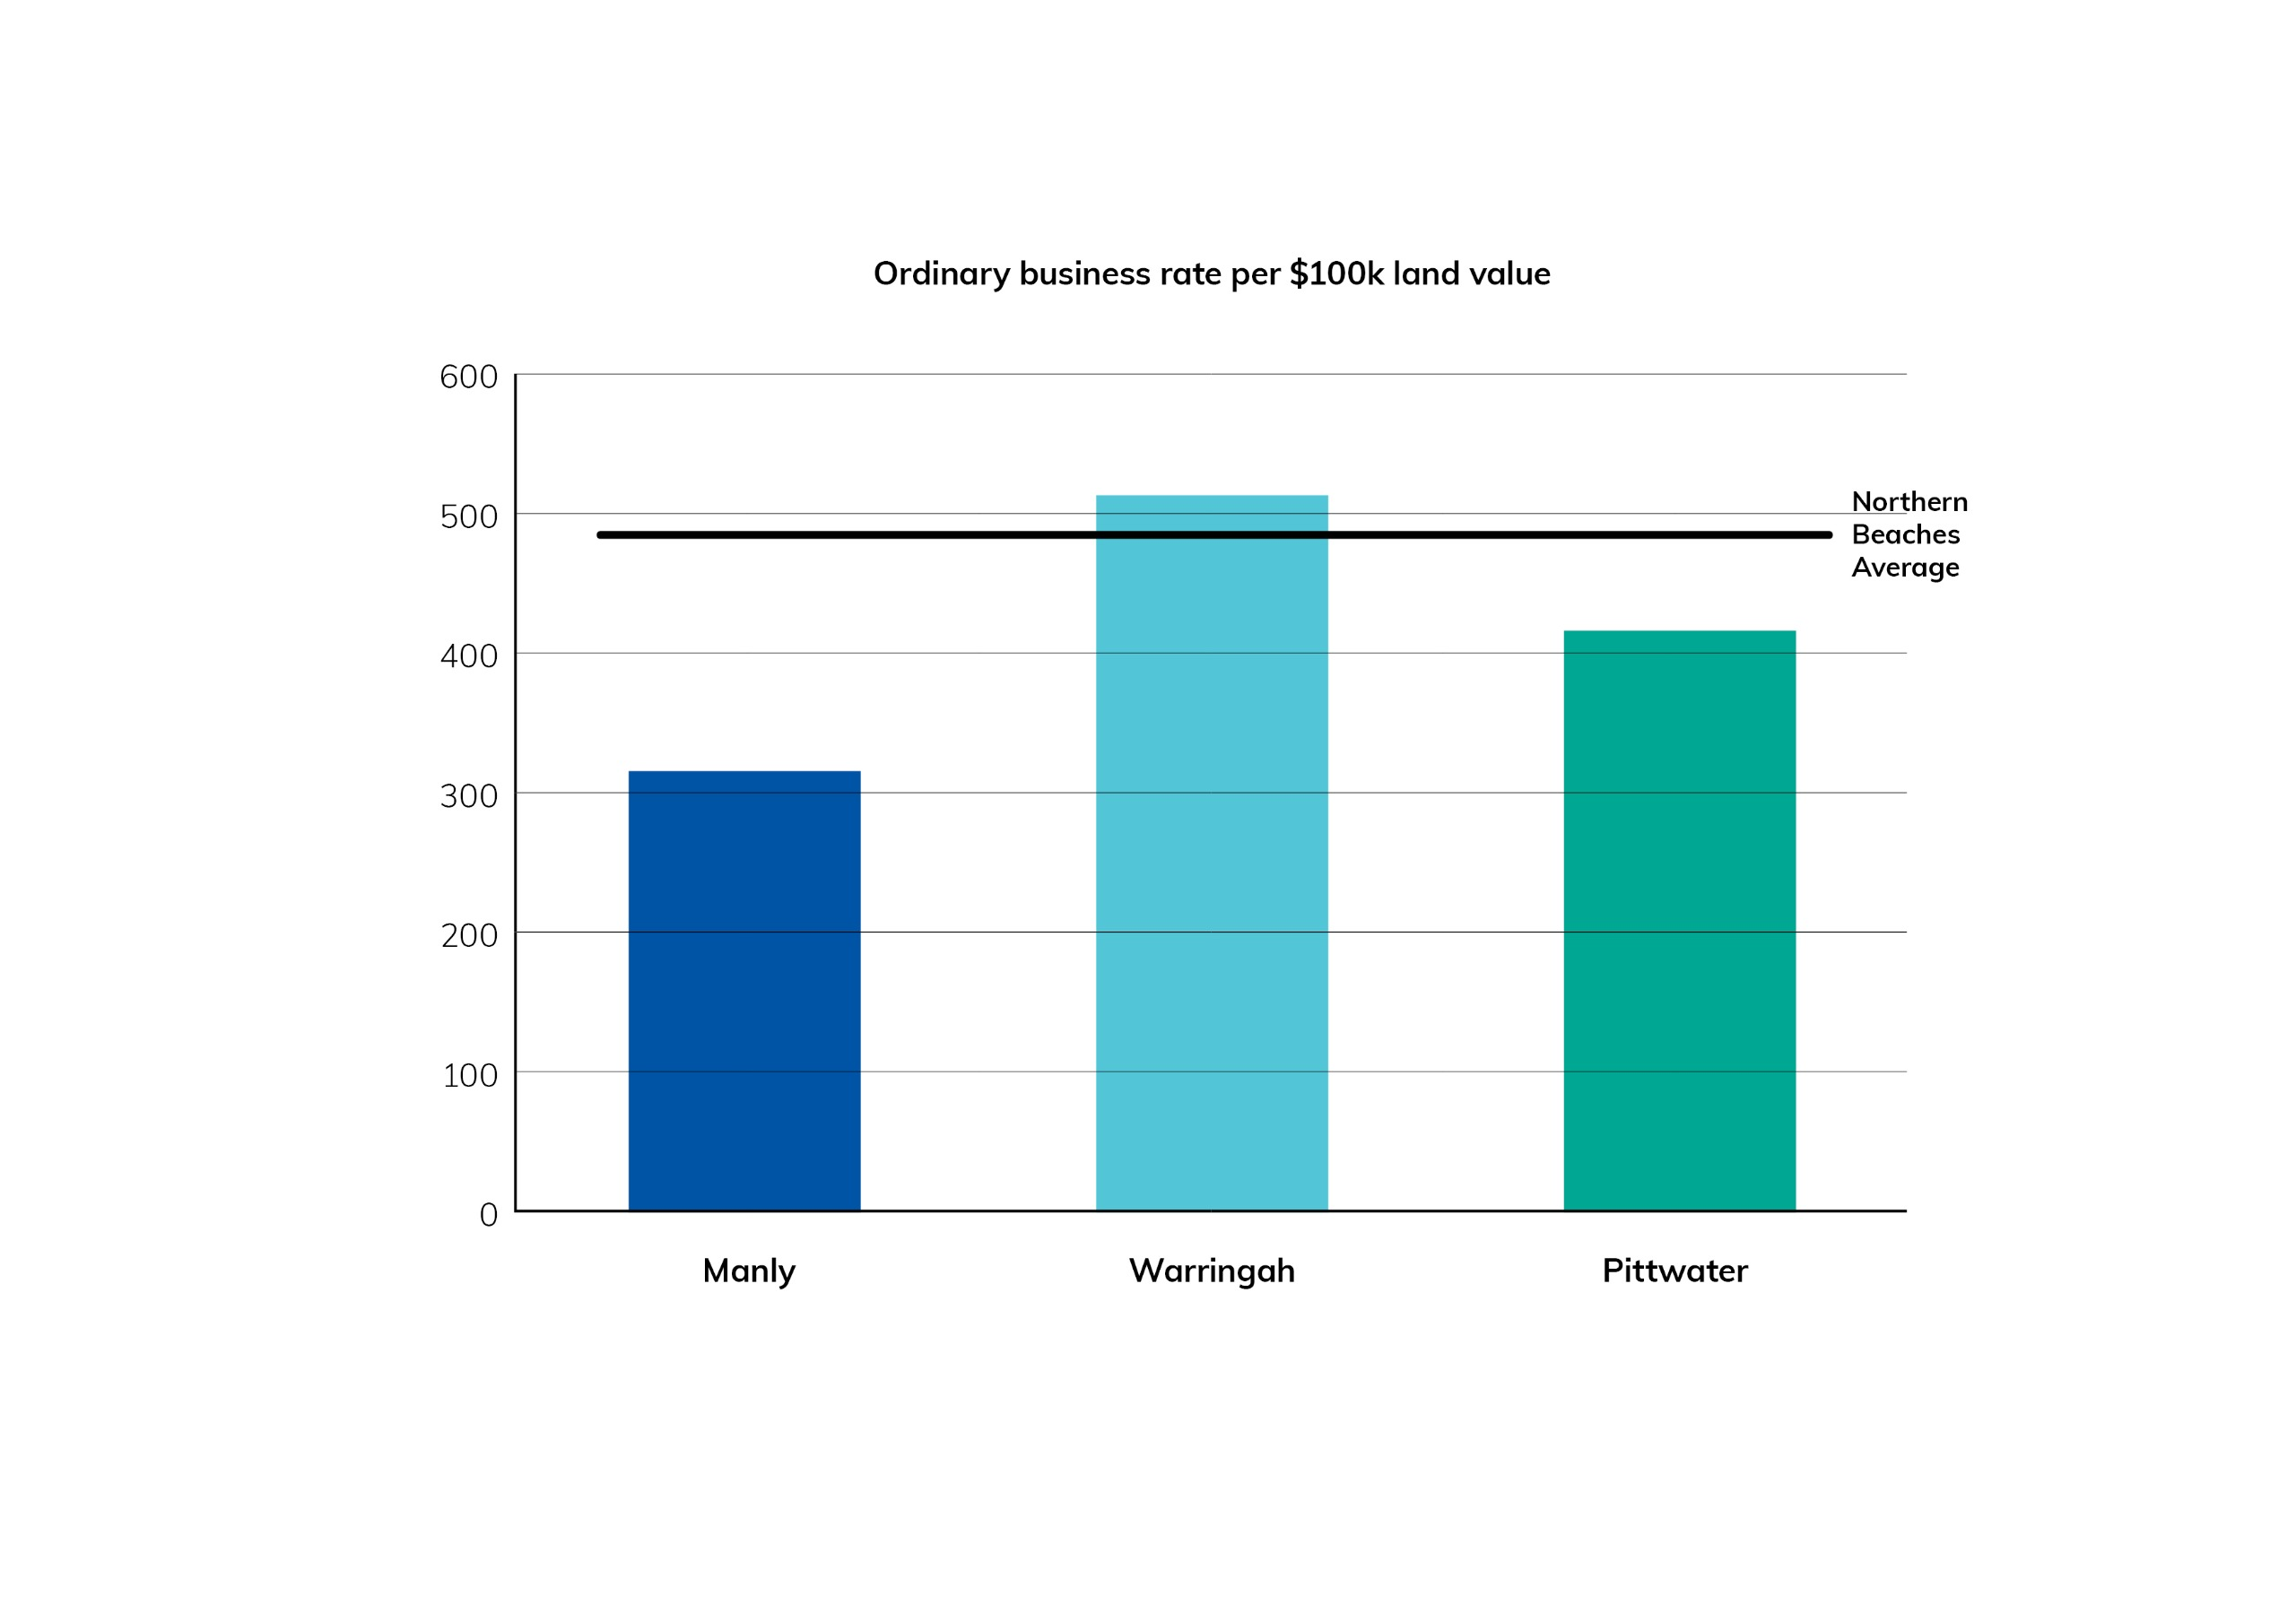 Ordinary business rate per $100k land value